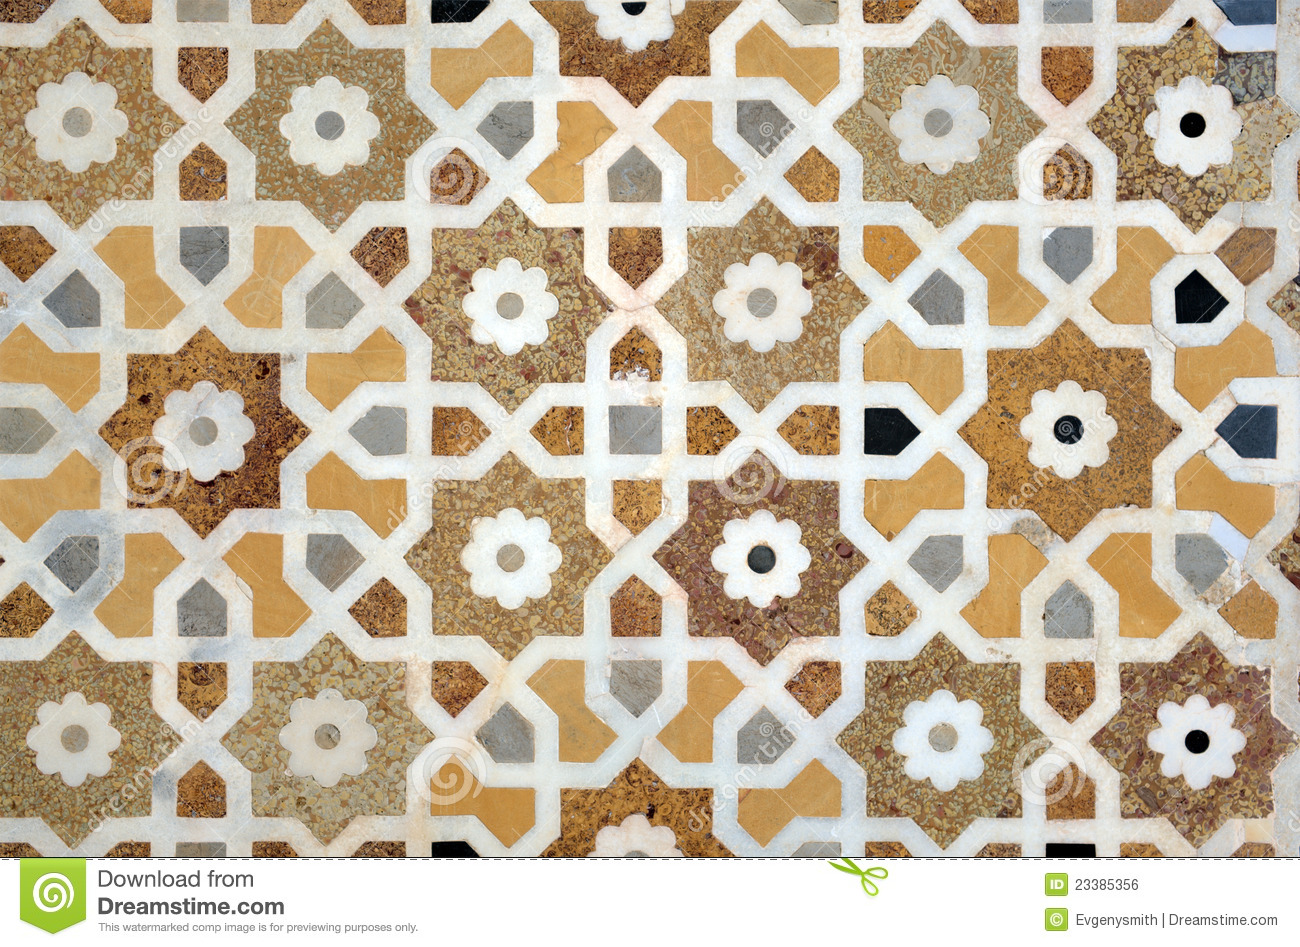 Islamic Interlace Pattern Royalty Free Stock Image - Image: 23385356